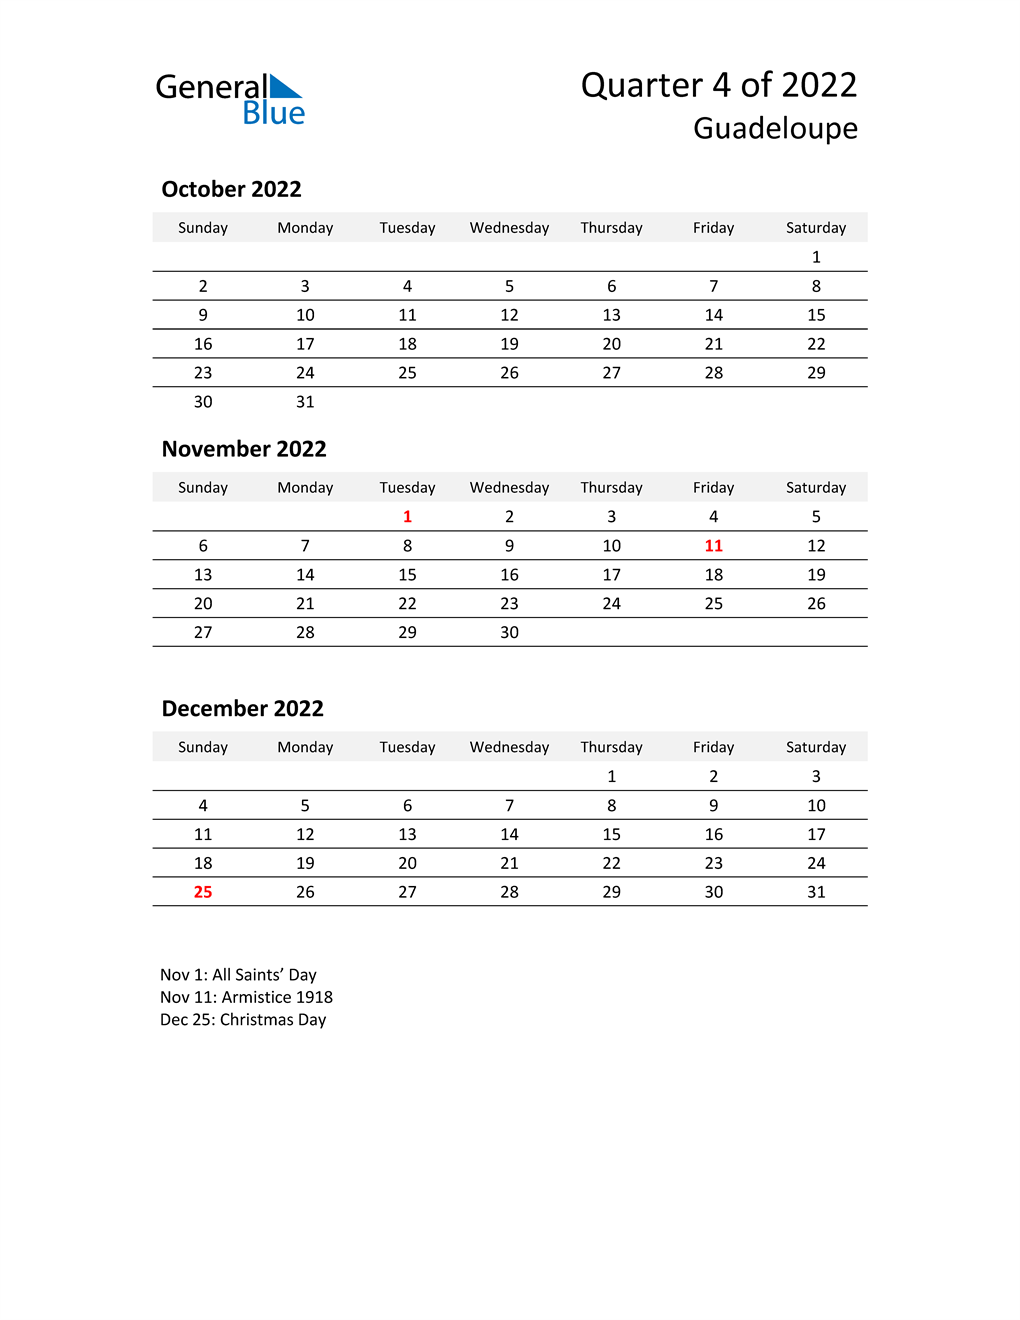 2022 Three-Month Calendar for Guadeloupe